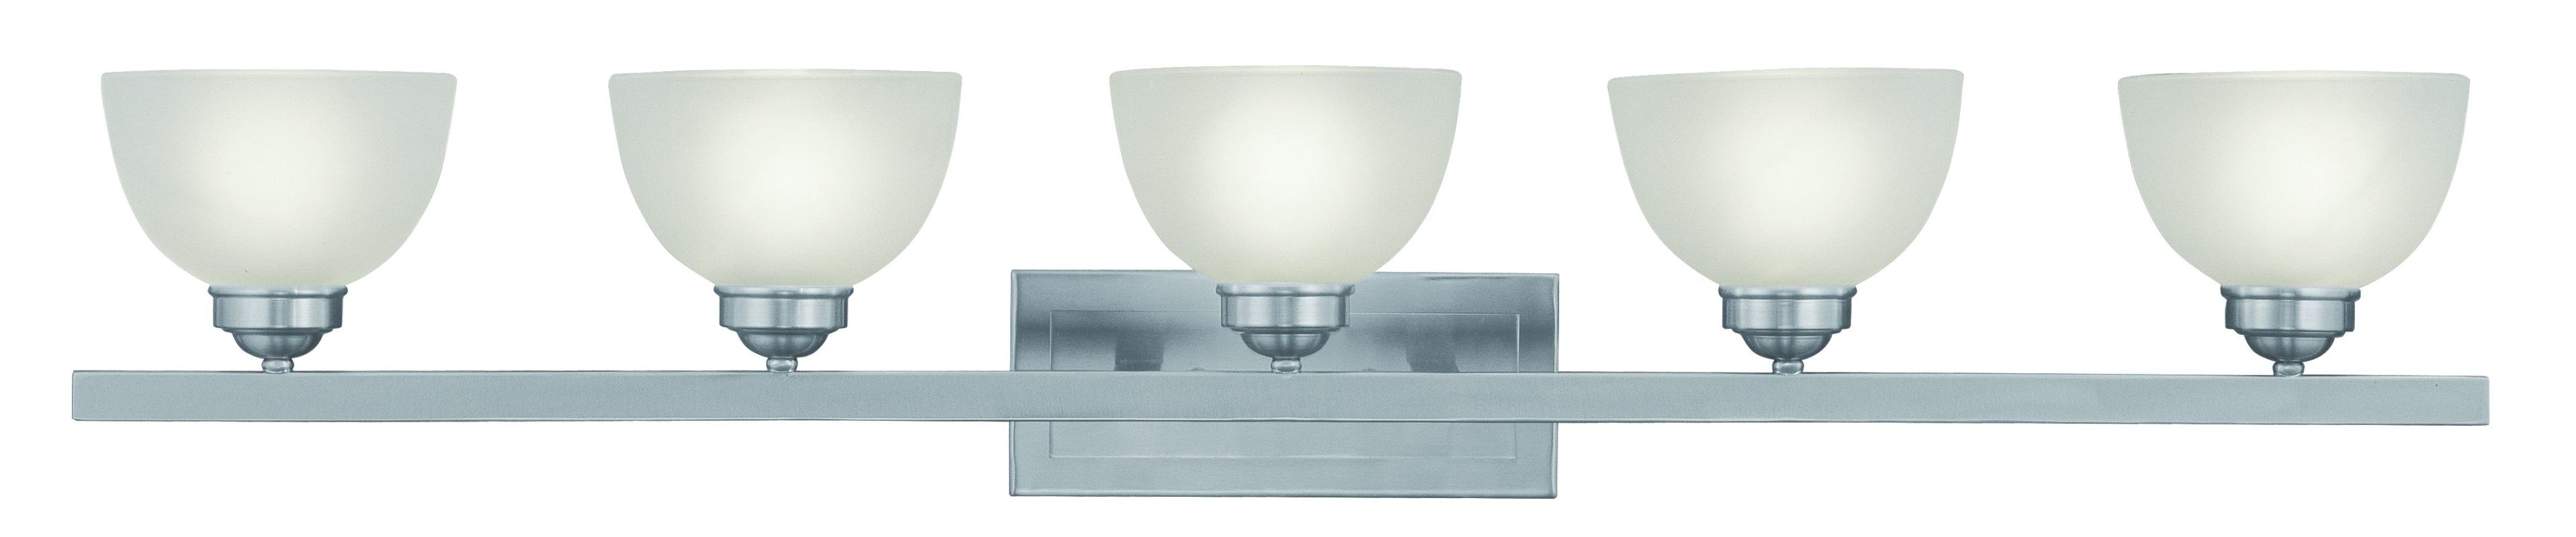 "Livex Lighting 4205 5 Light 500 Watt 48"" Wide Bathroom Fixture with"